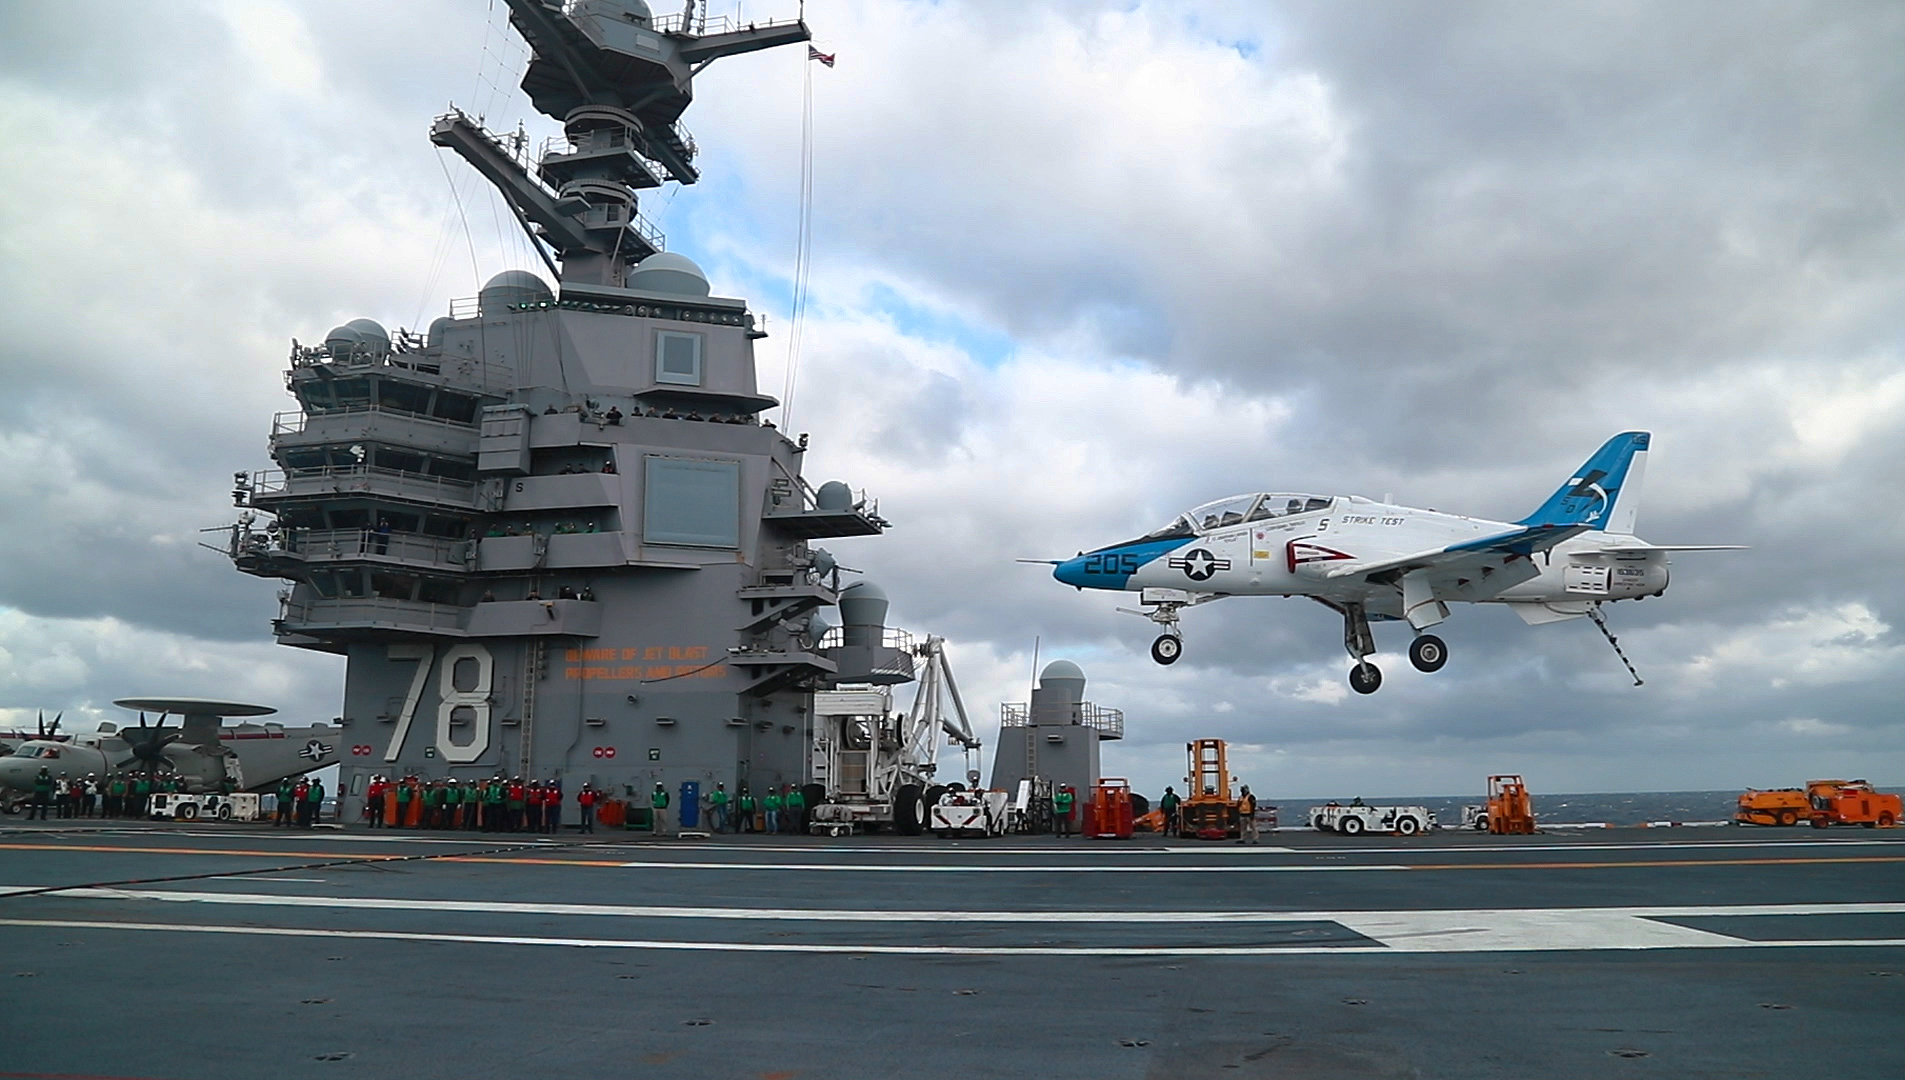 A T-45 Goshawk lands on the carrier Gerald R. Ford. A slew of technical issues has set back the Navy's training pipeline and caused a shortfall in fighter pilots. (MC2 Ruben Reed/U.S. Navy)